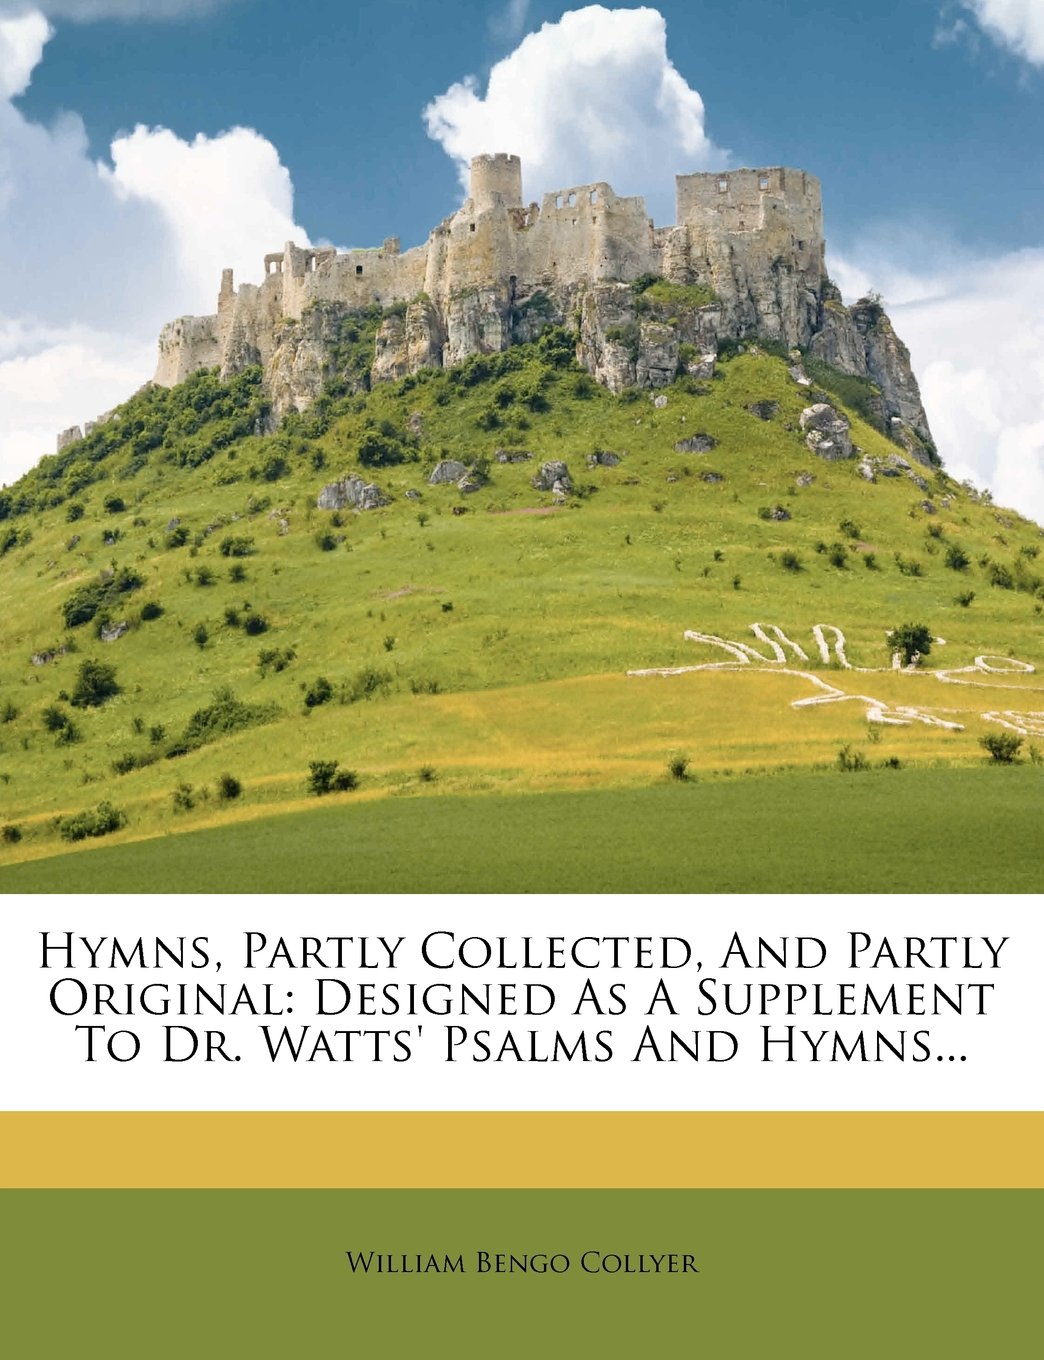 Download Hymns, Partly Collected, And Partly Original: Designed As A Supplement To Dr. Watts' Psalms And Hymns... pdf